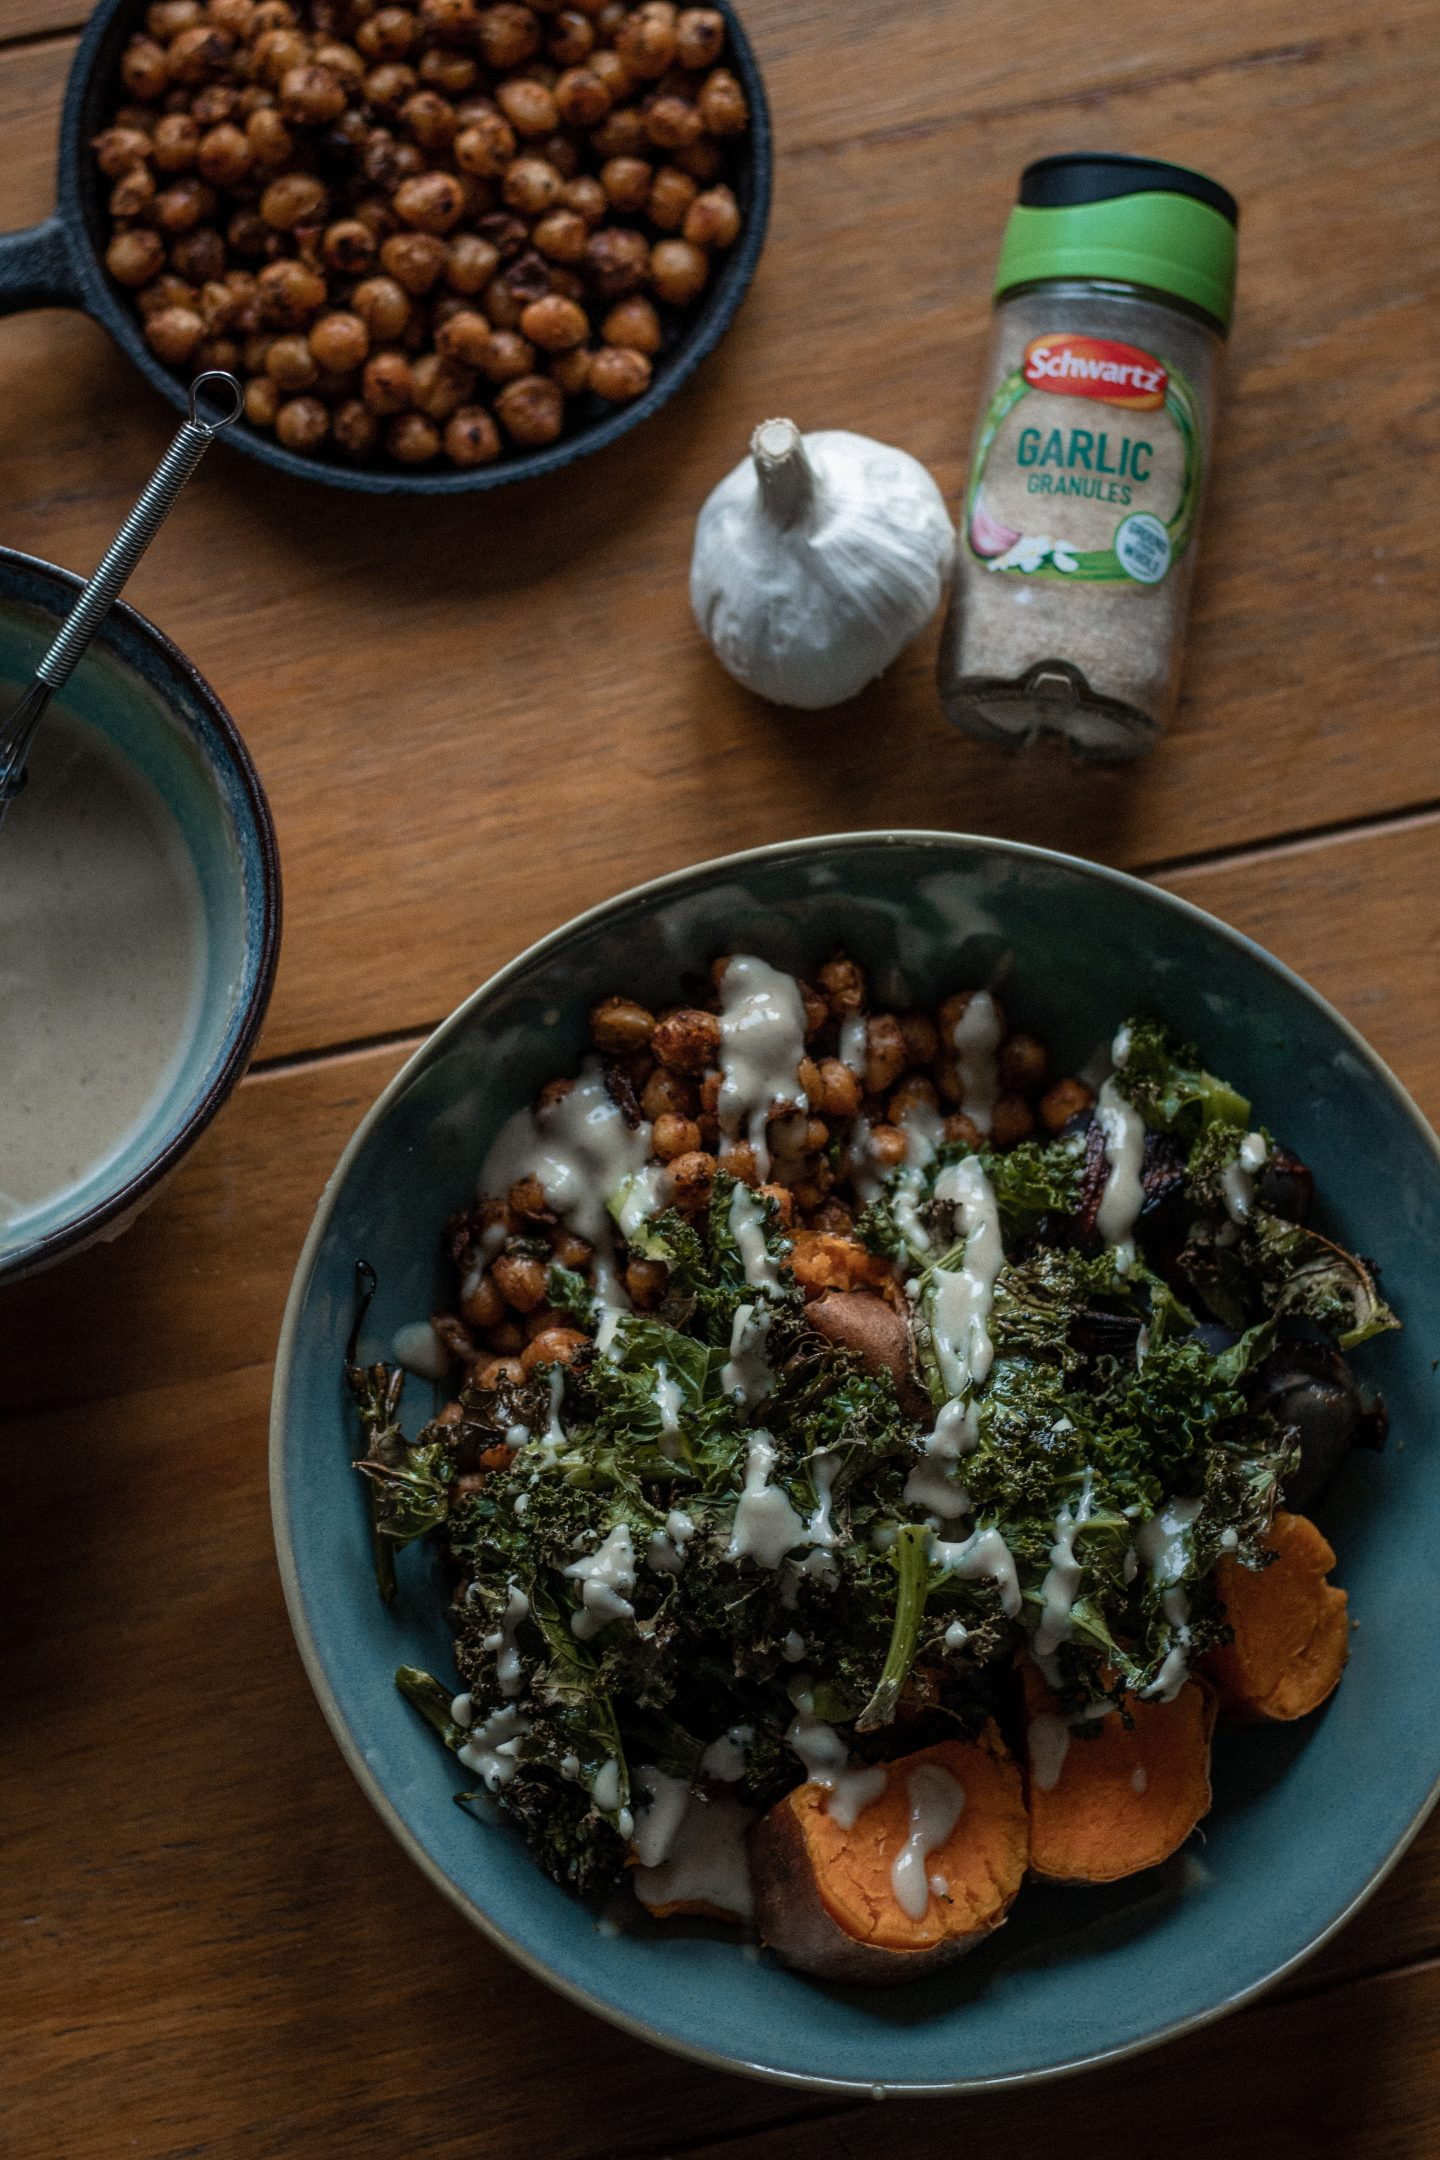 Easy and Healthy Buddha Bowl with Super Garlic-y Chickpeas | ft. Schwartz